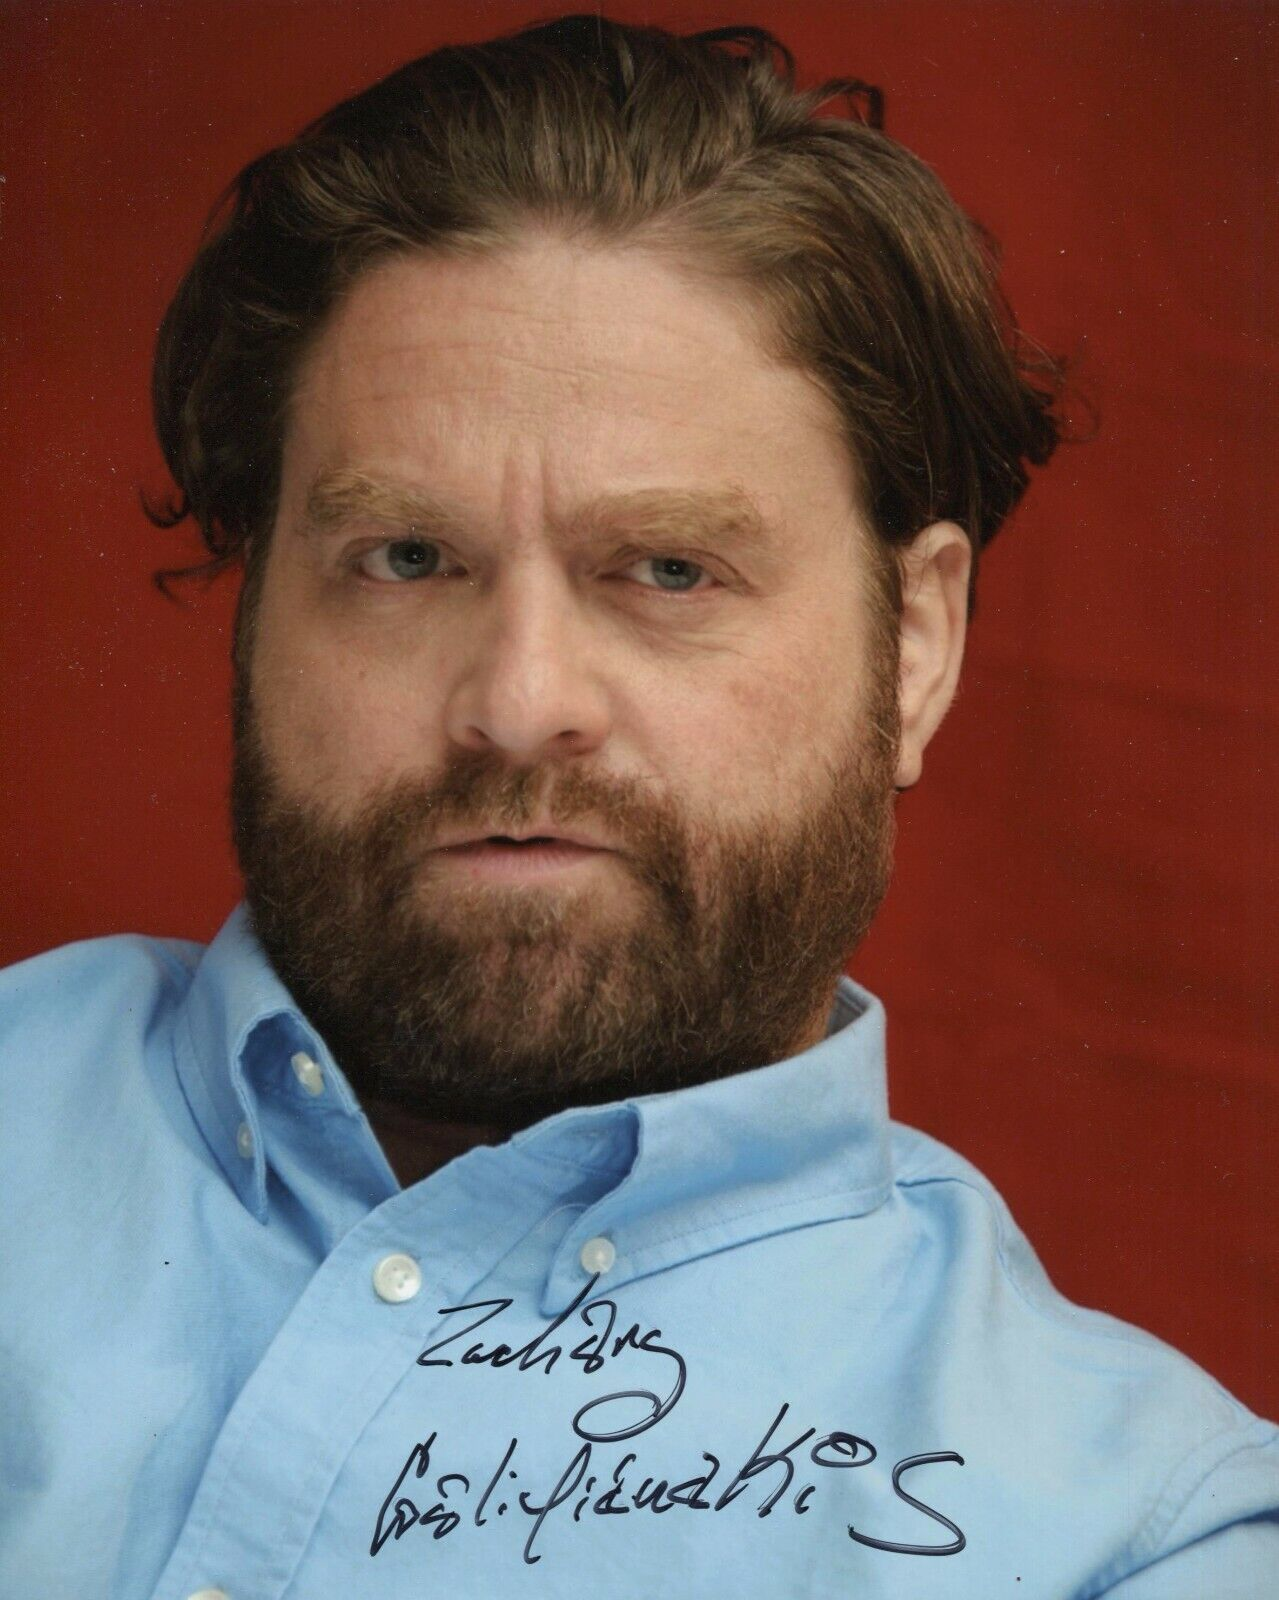 Zach Galifianakis Signed 8x10 Lot Of 2 Auto Autograph The Hangover Between Ferns - $1.00